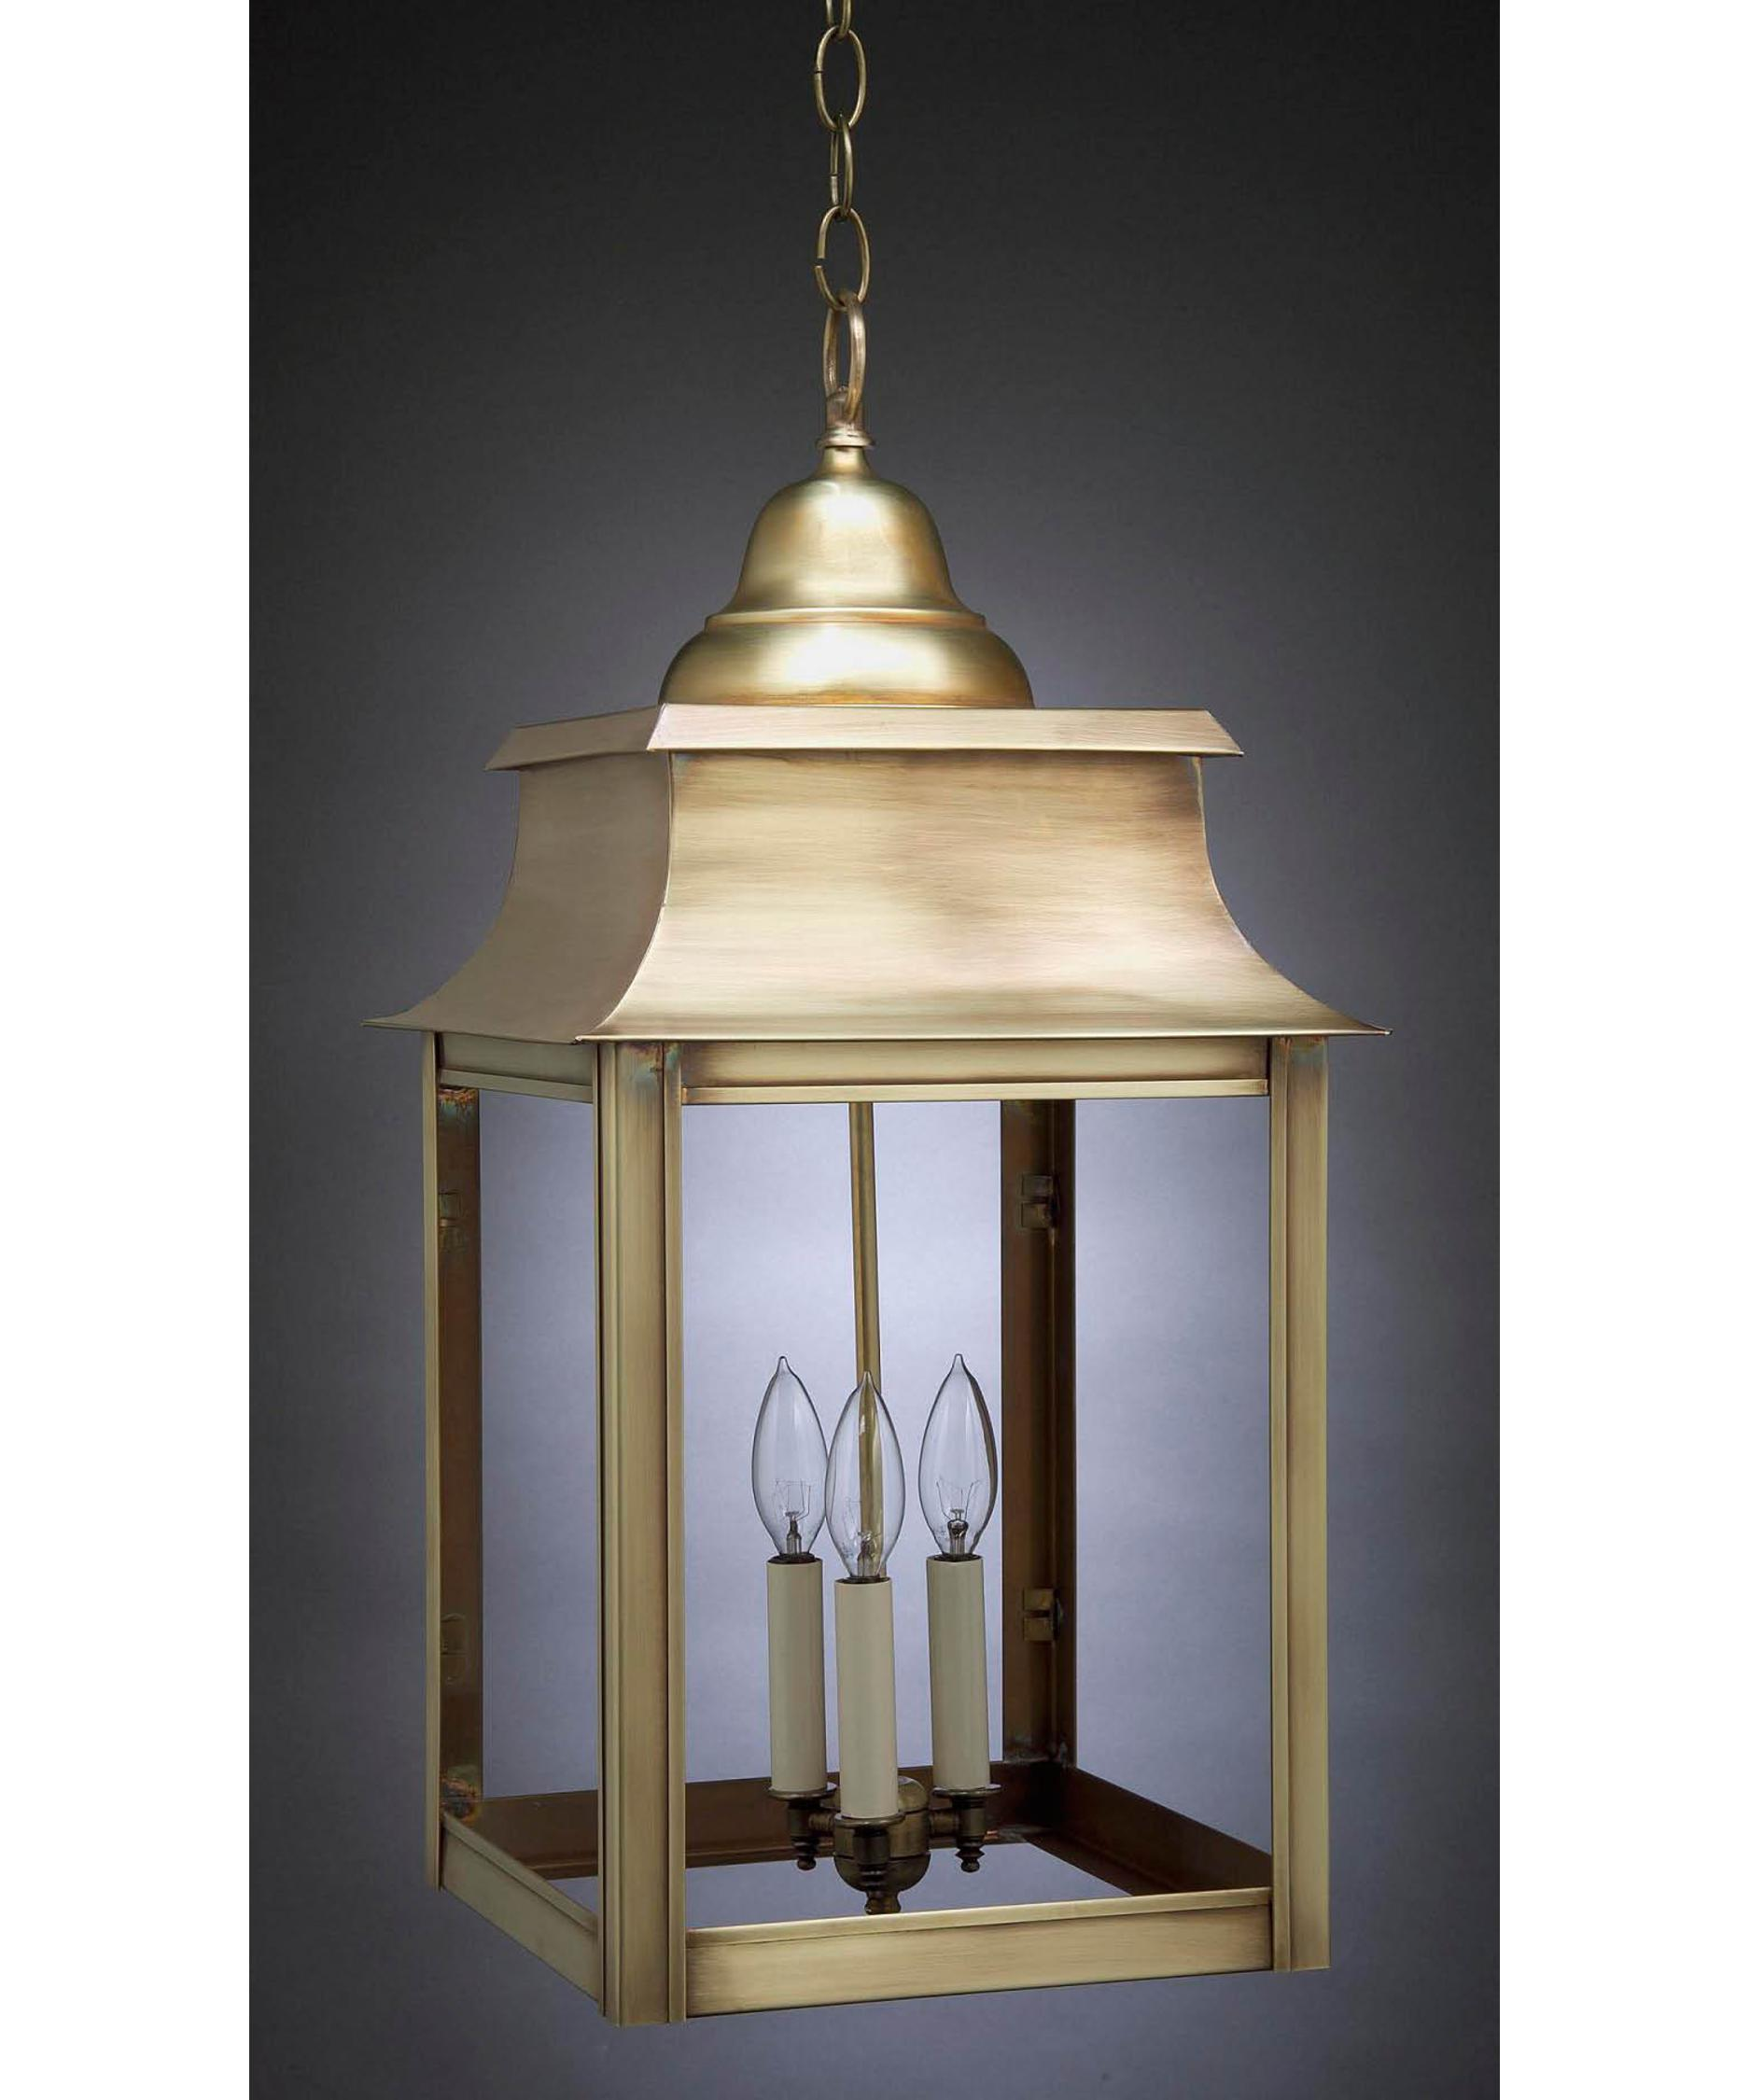 Outdoor hanging lamp - Shown With Clear Glass